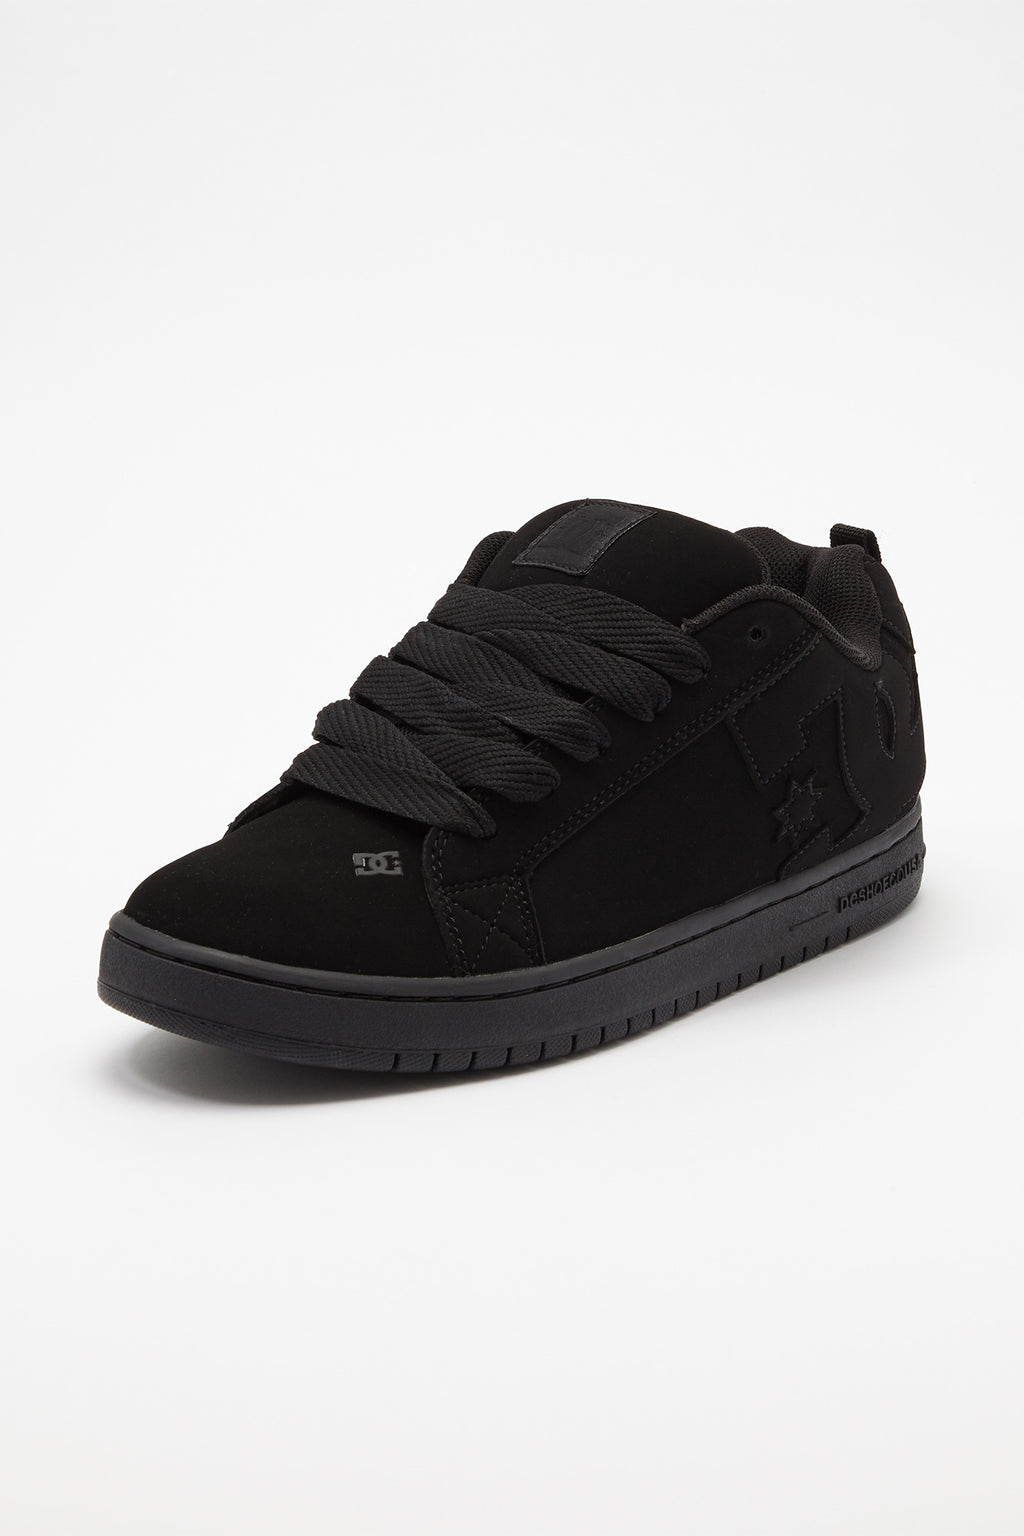 DC Mens All Black Court Graffik Shoes